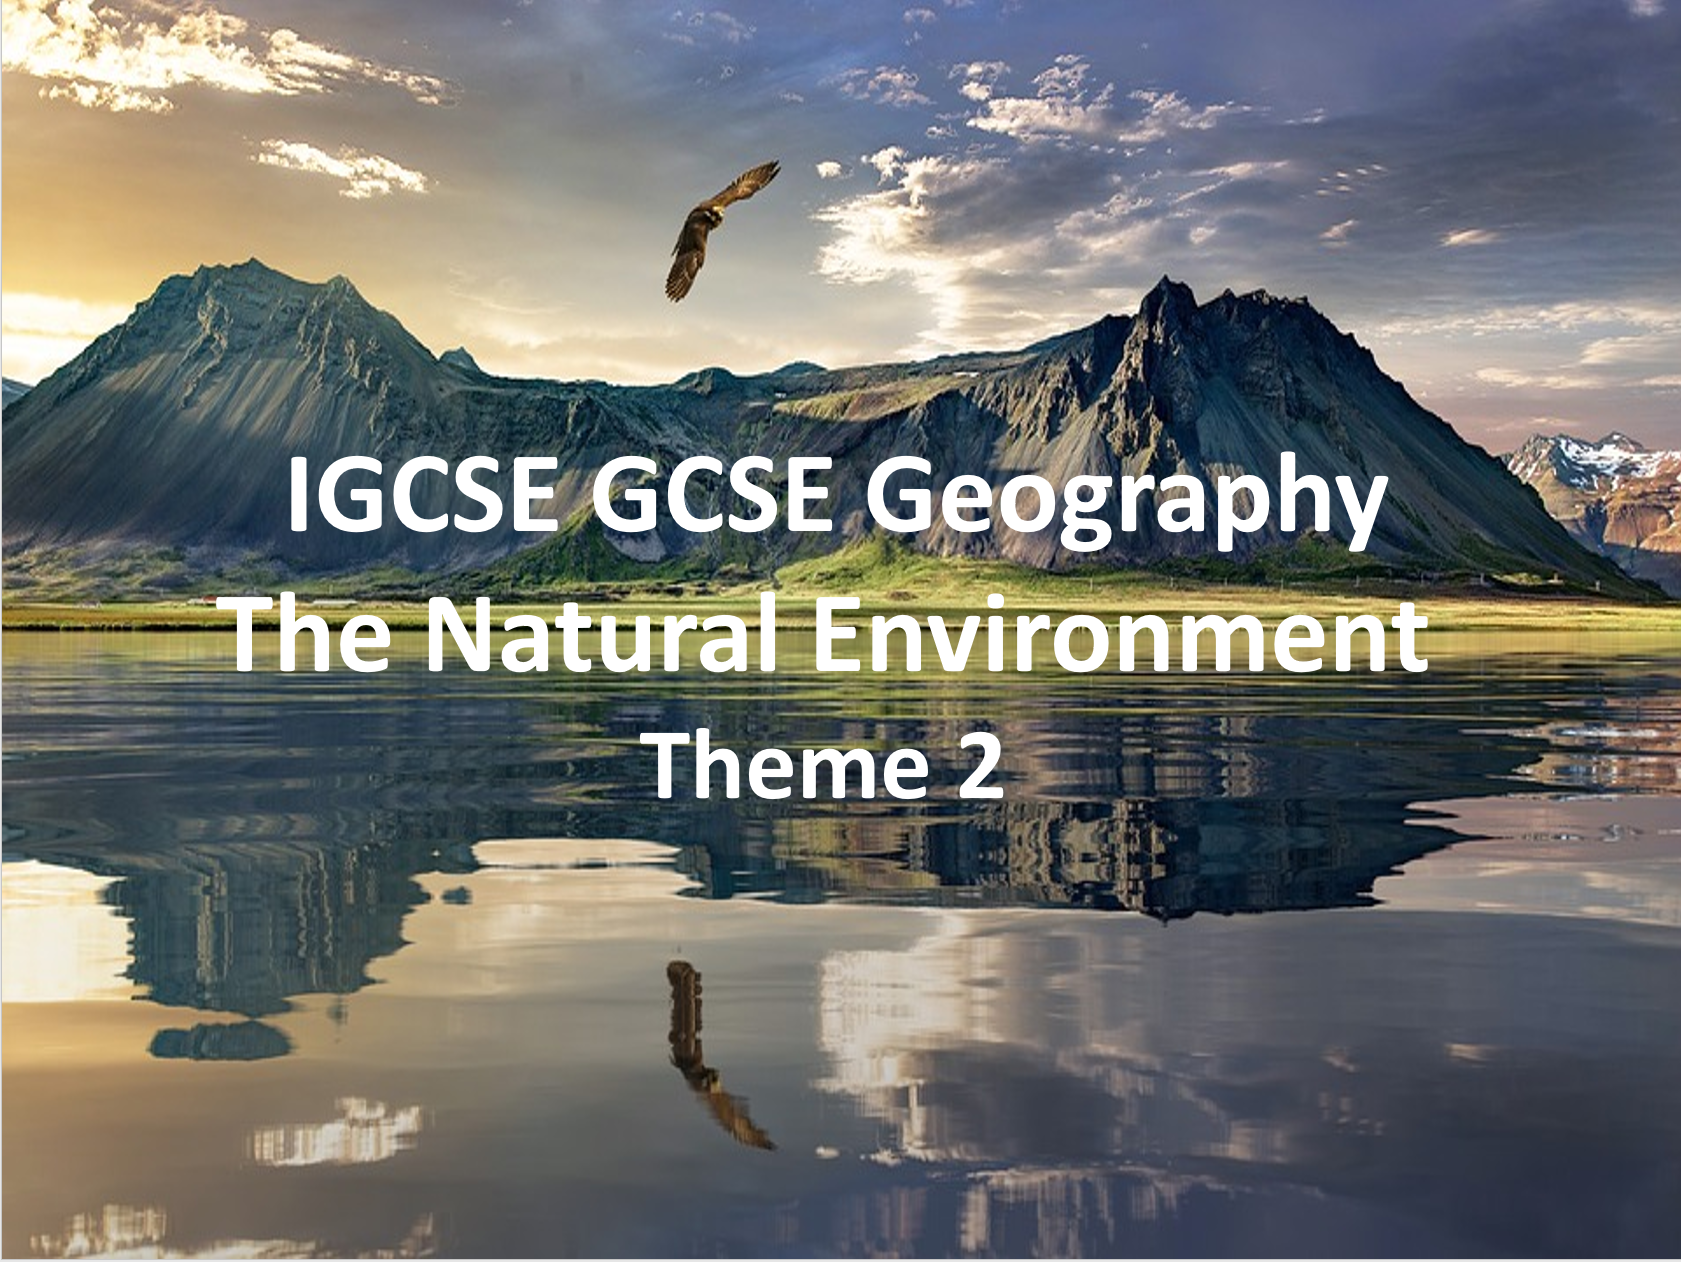 IGCSE Theme 2 The Natural Environment